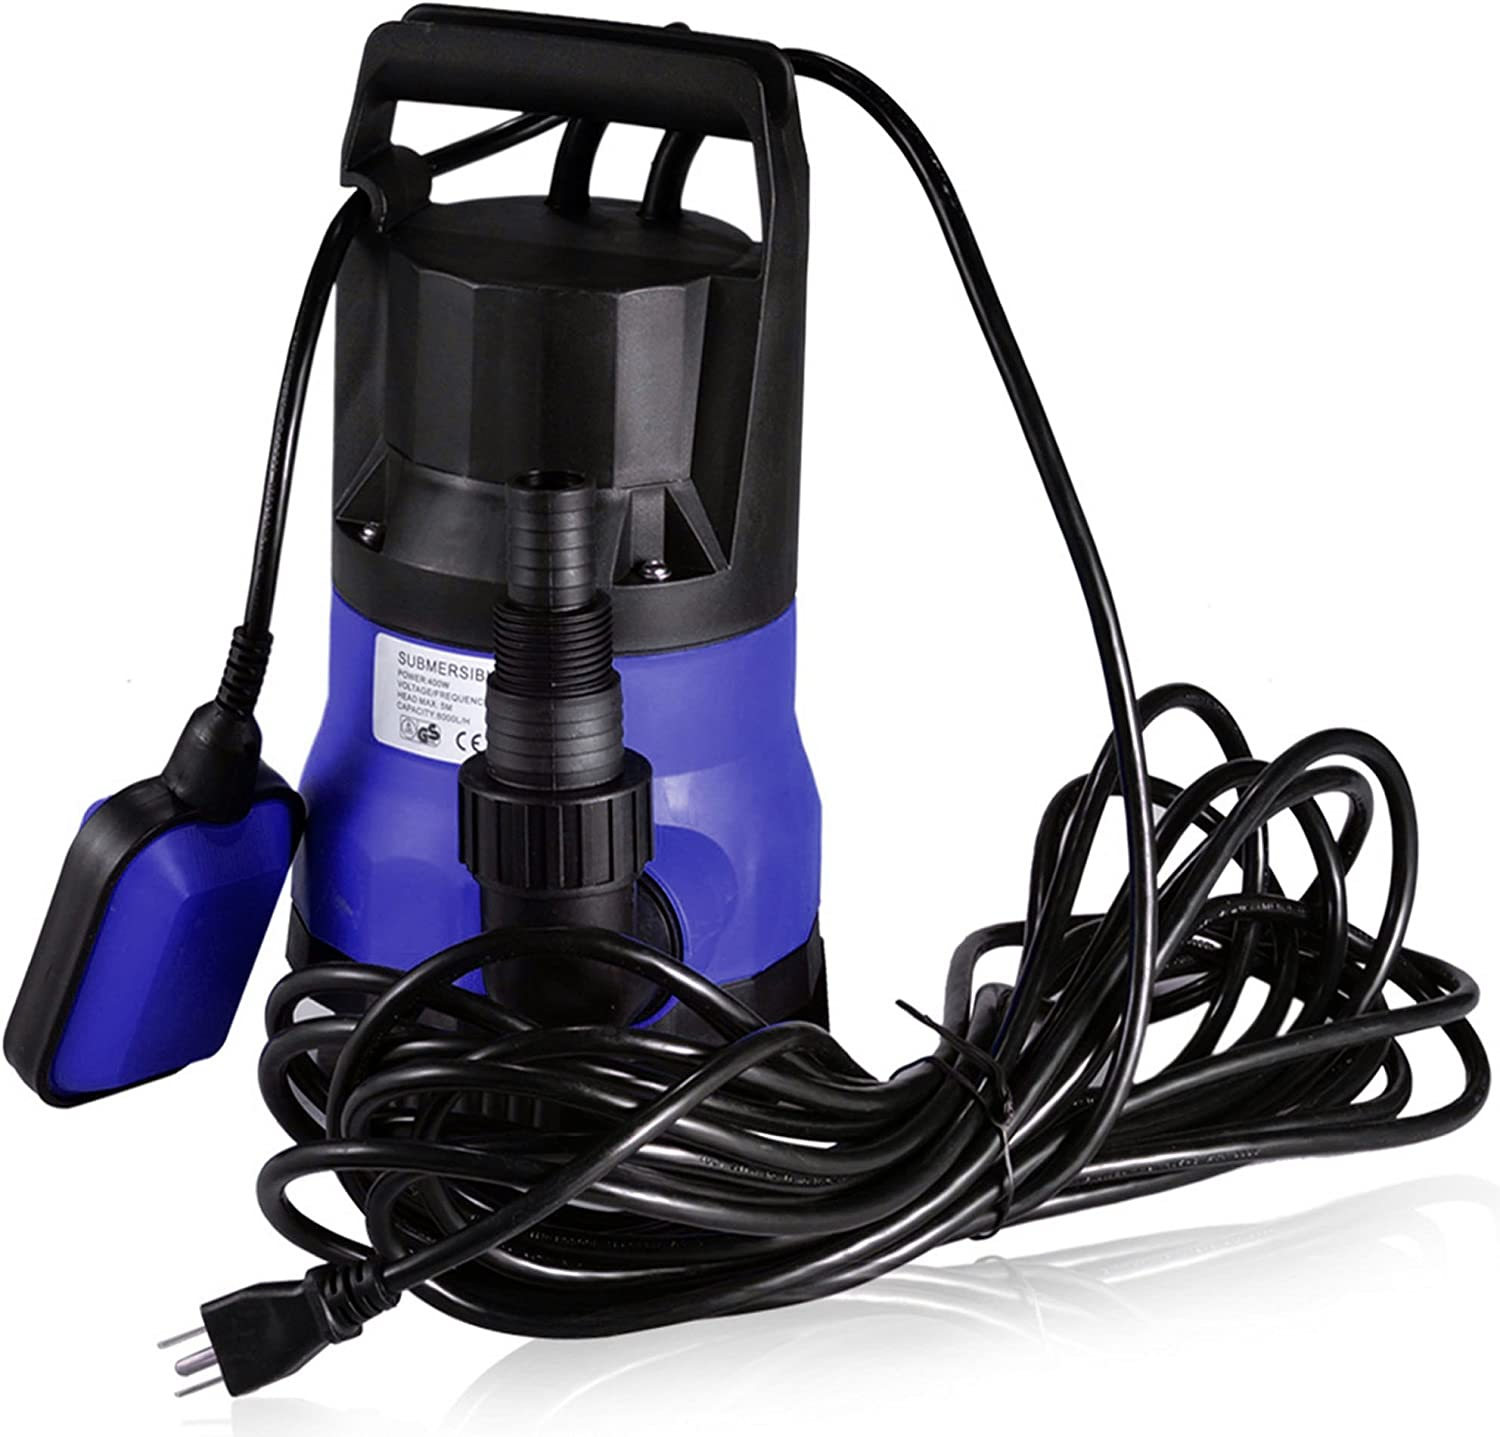 Submersible Water Pump Sump with Float Switch Portable Clean/Dirty (0.5HP, blue)